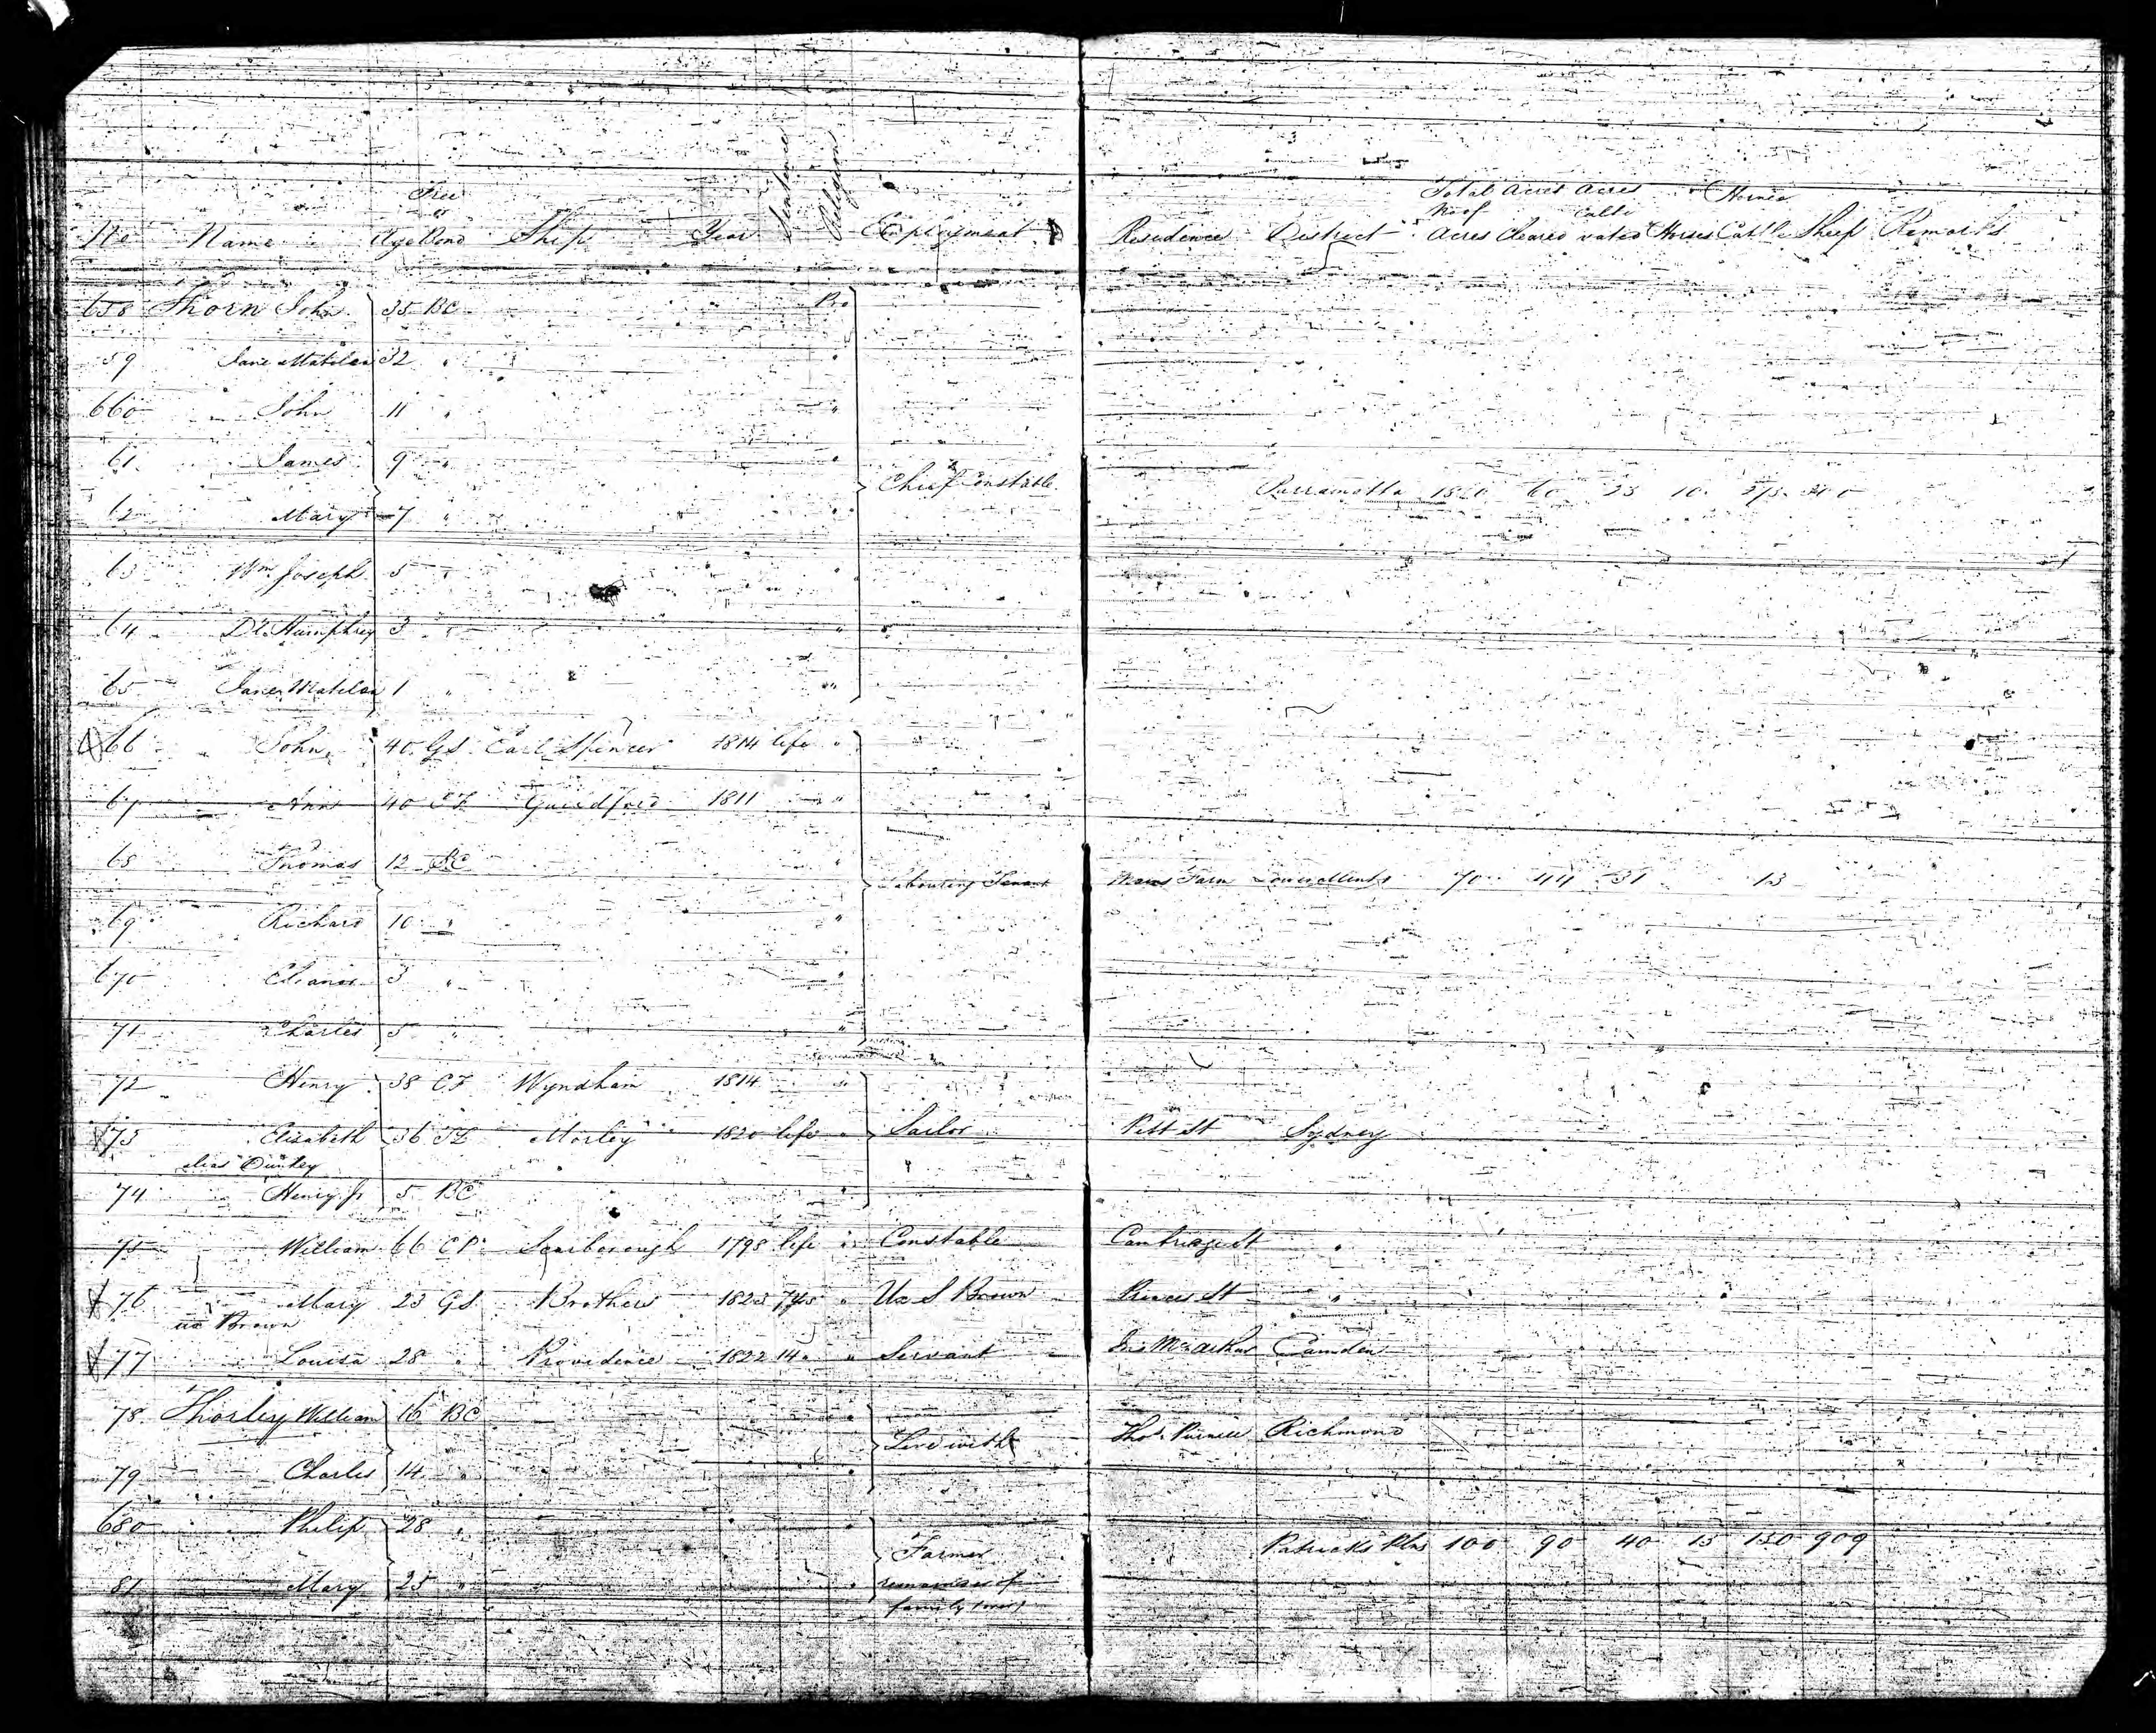 1828 Census of the Colony of New South Wales, - Philip and Mary Thorley and family.